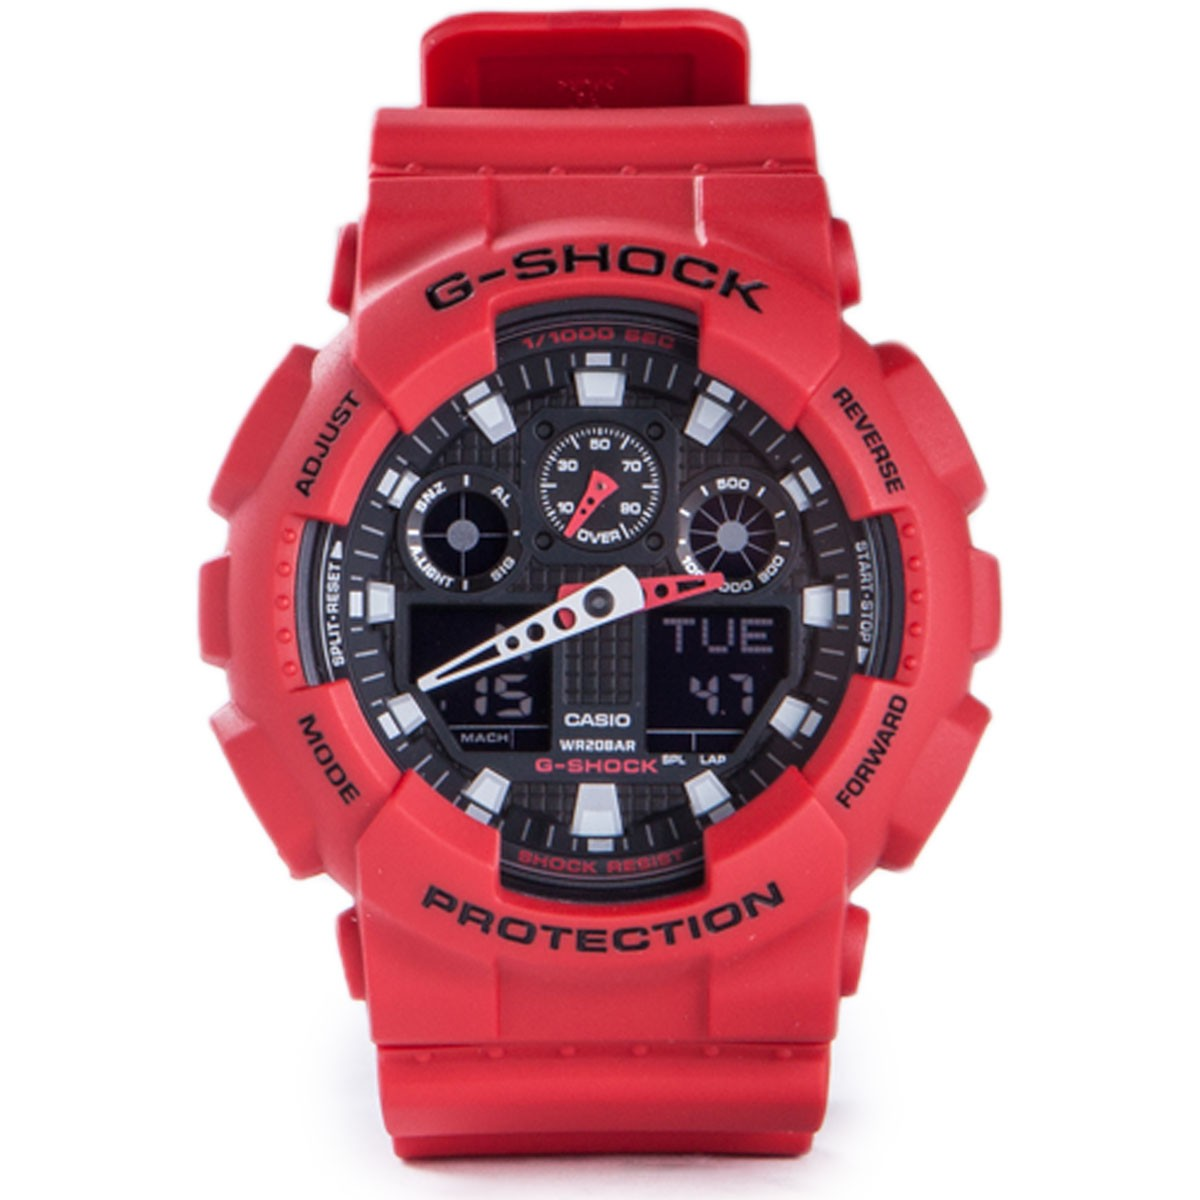 G-Shock GA-100 Limited Edition Watch - Red